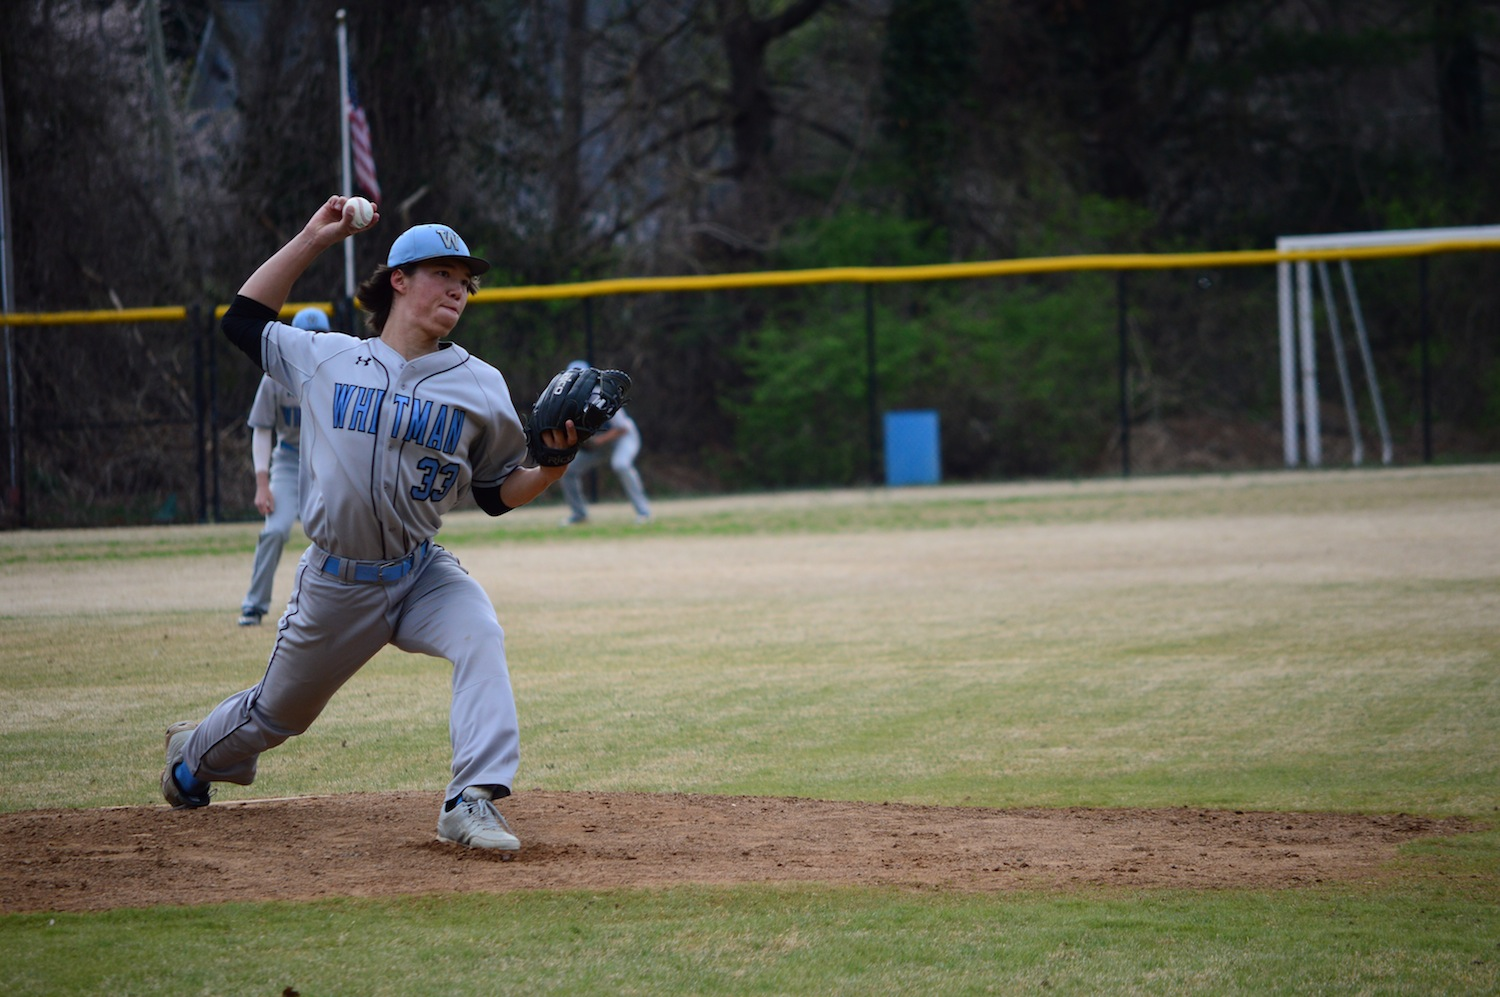 Pitcher Nathan Haddon threw five shutout innings against RM on Wednesday. Photo by Annabelle Gordon.